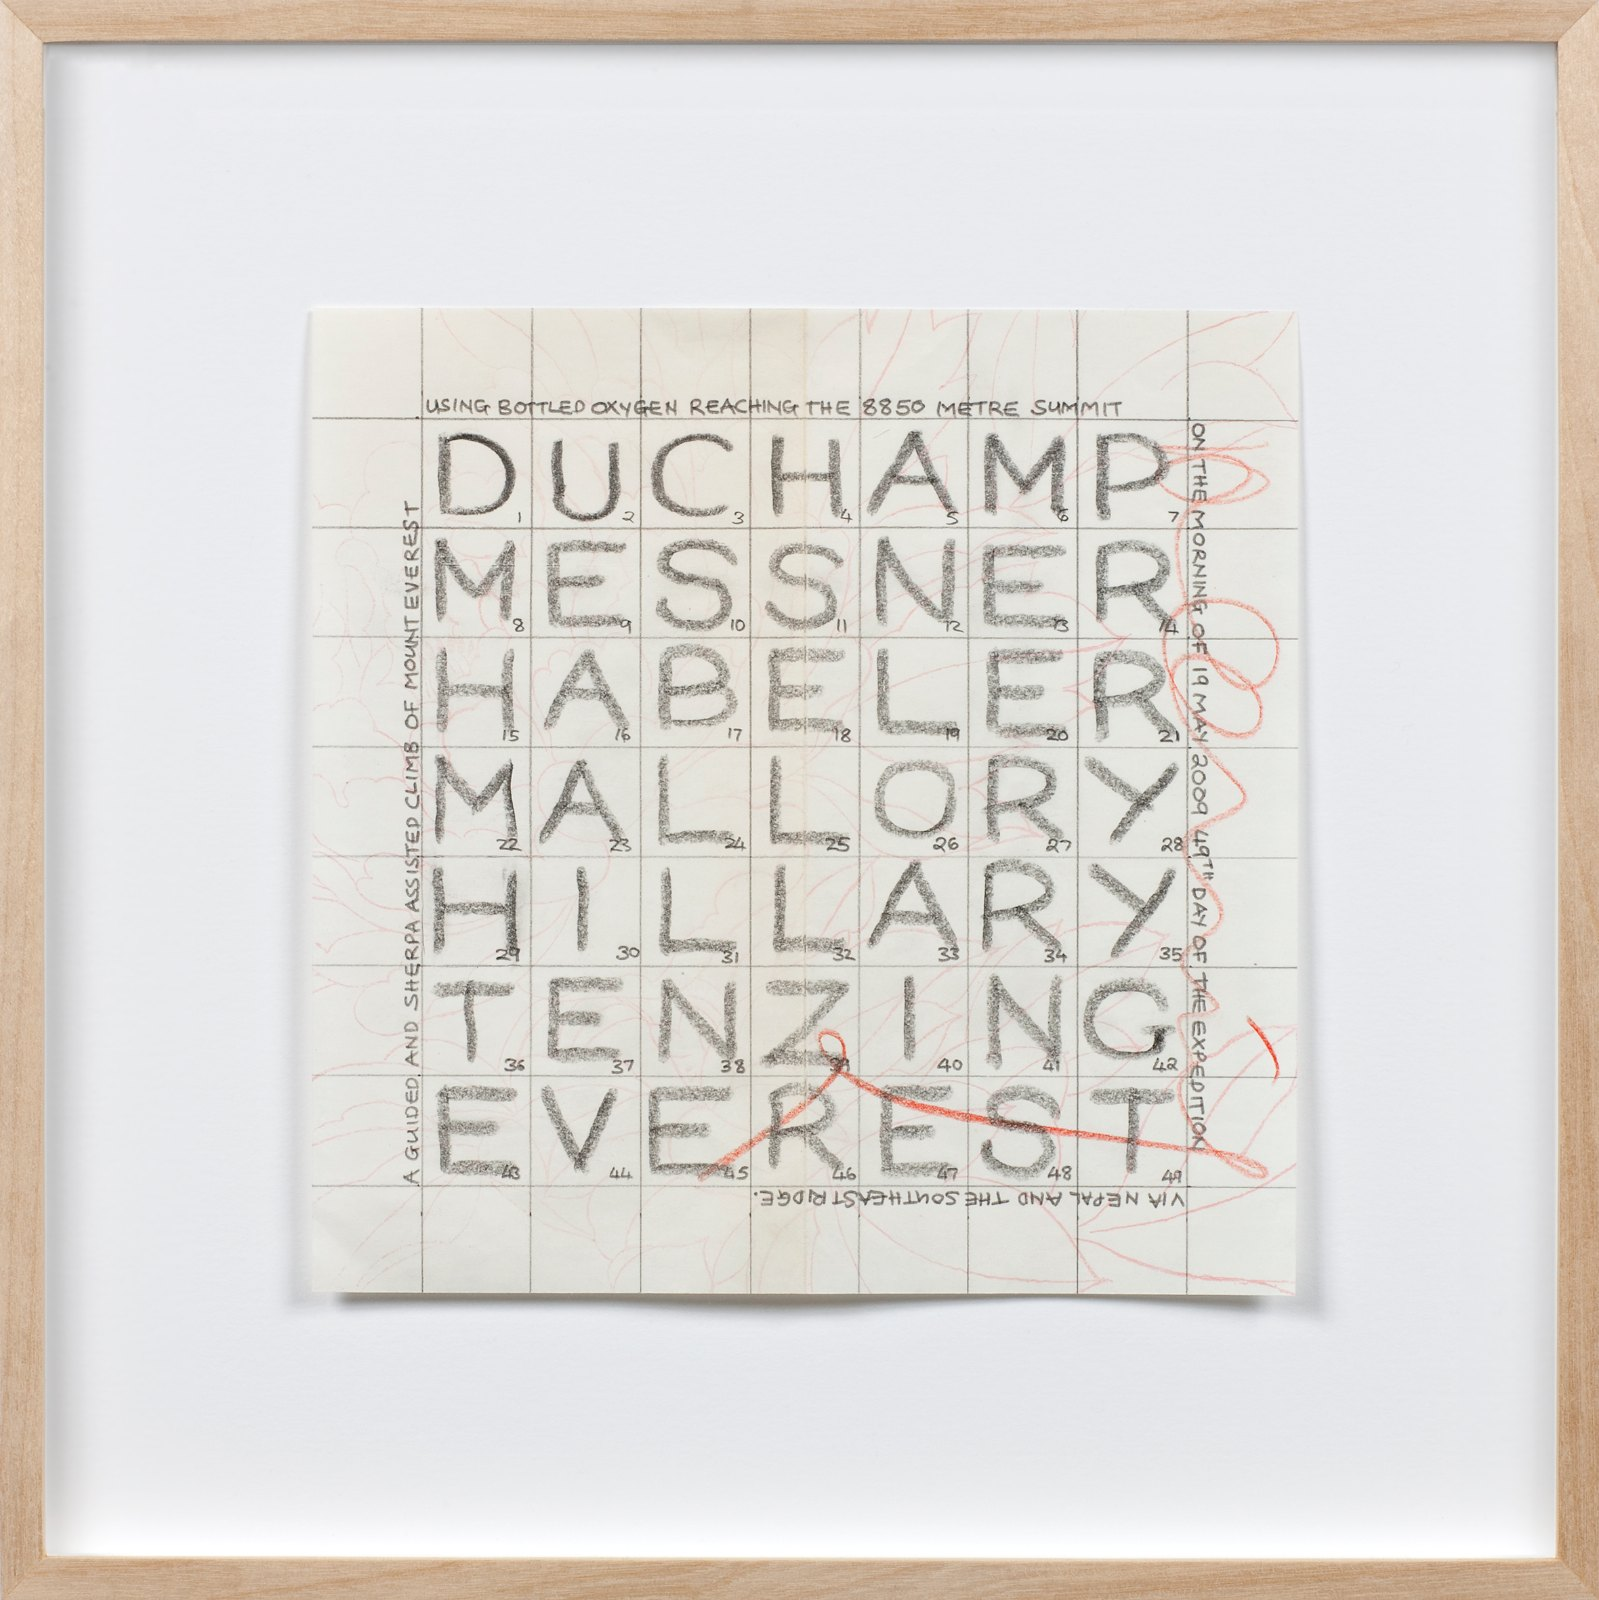 The Names of Seven Men, 2009, pencil and coloured pencil text on Chinese printed paper, 18 x 18 cm